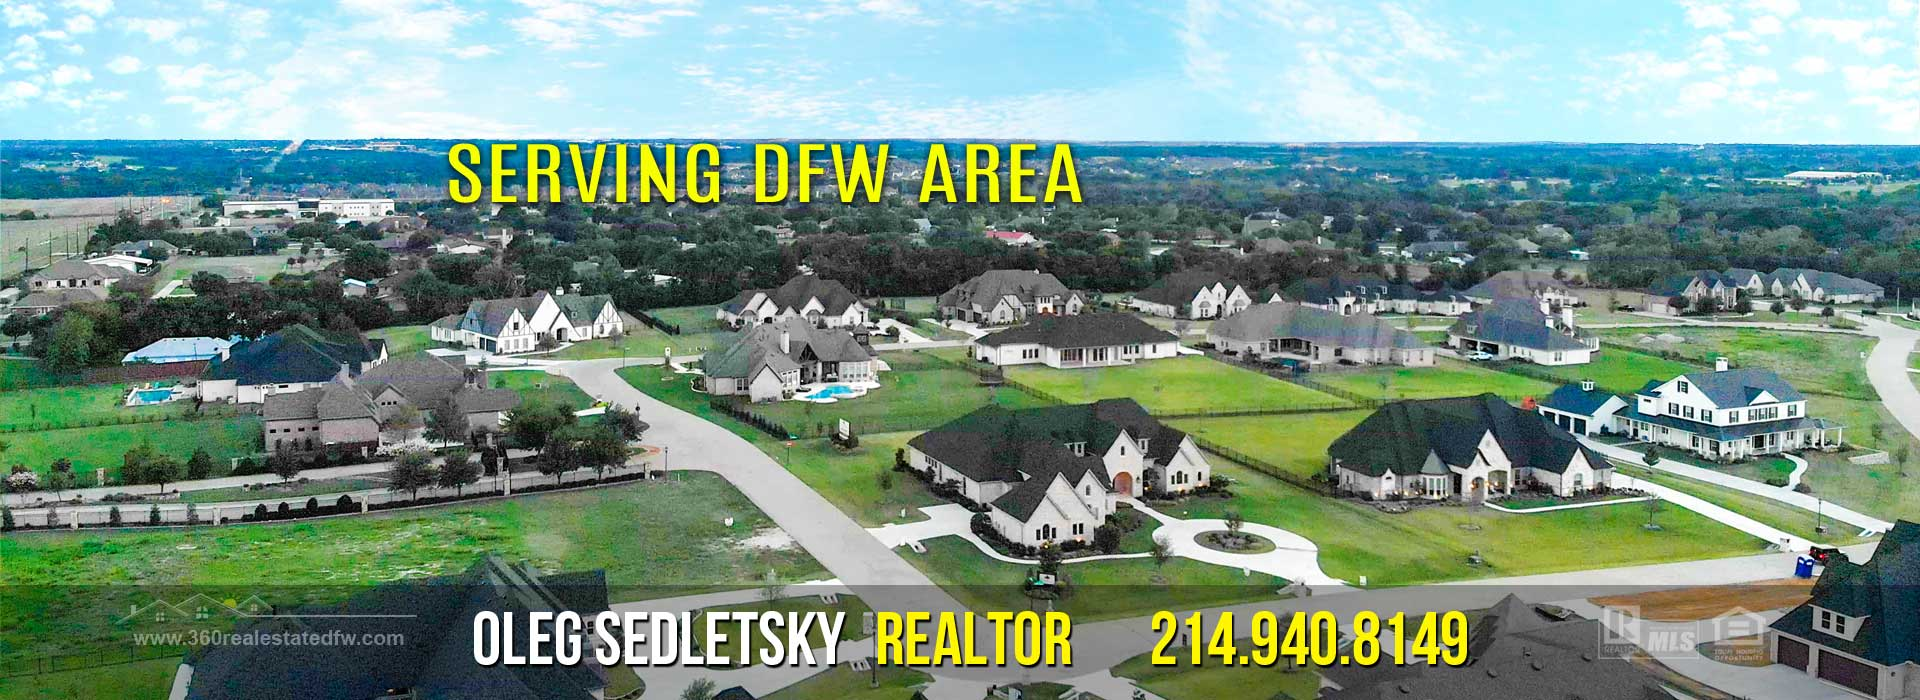 Dallas-Fort Worth Realtor - 214.940.8149 - Sell or Buy Home, Investment Property, Land/Lot, Commercial or Farm/Ranch in North Texas